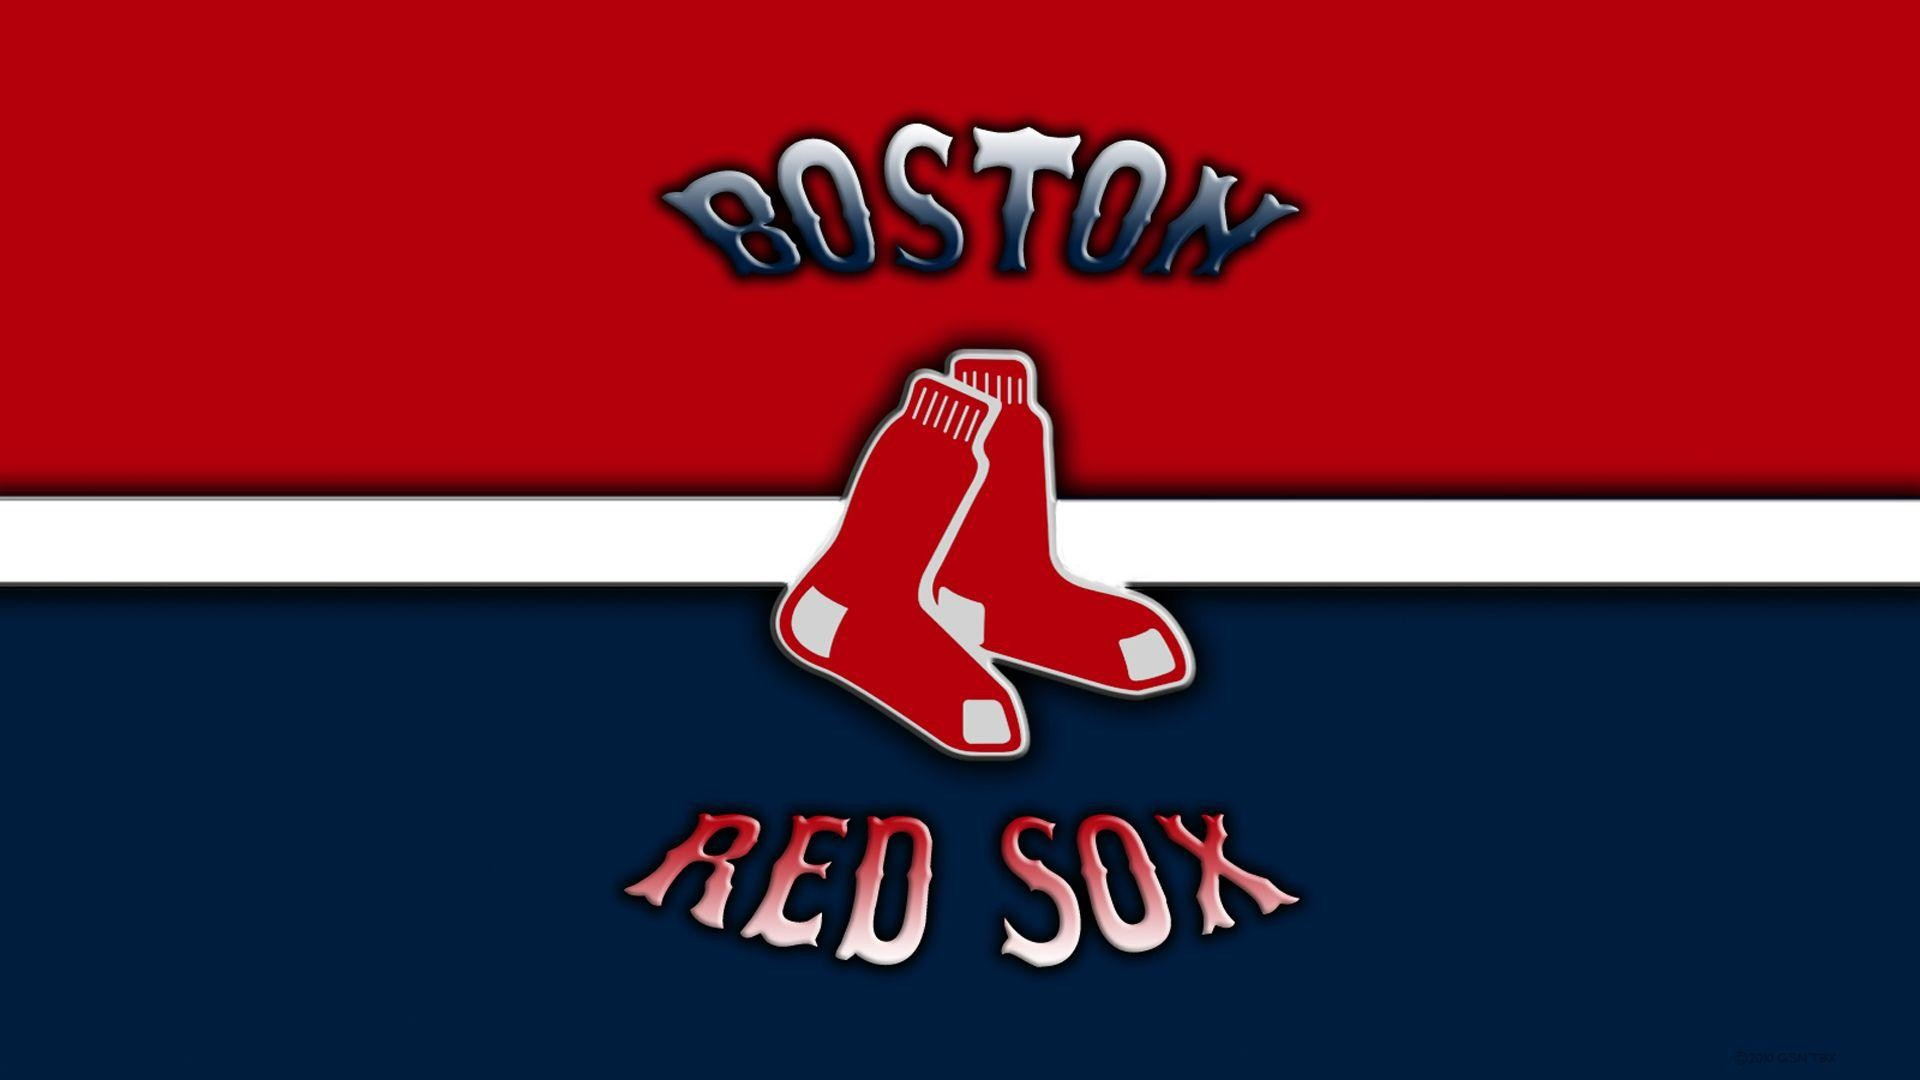 1920x1080 Boston Red Sox Logo on Wood iPhone Wallpaper | Retina iPhone .